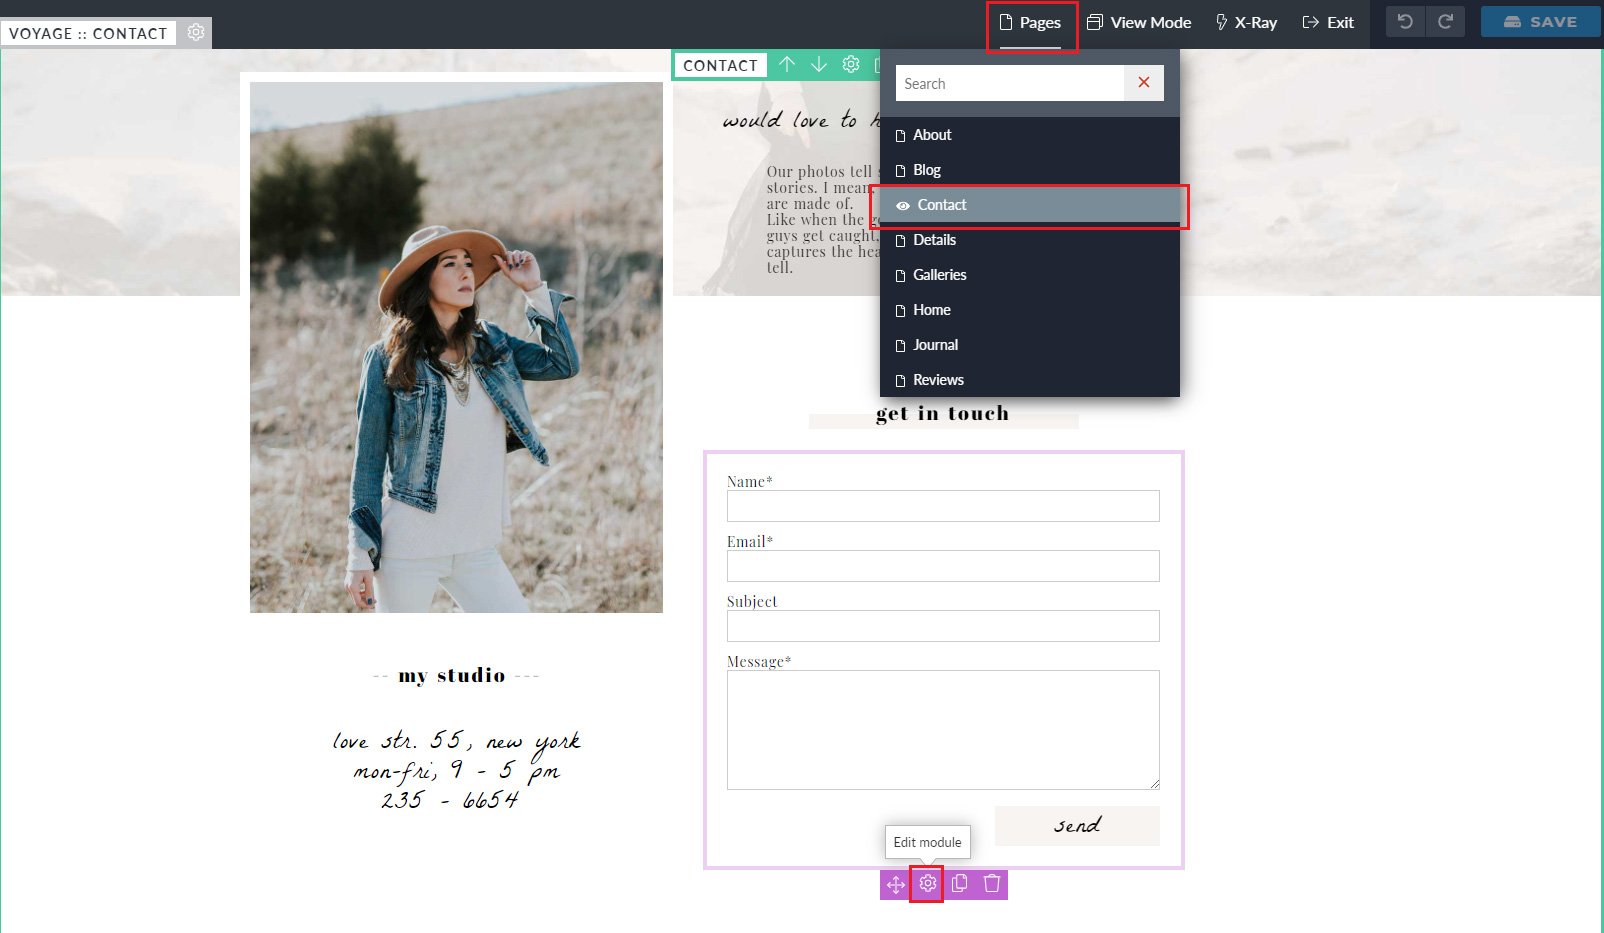 ProPhoto Lead Capture Form Customization from the Voyage ProPhoto 7 template design